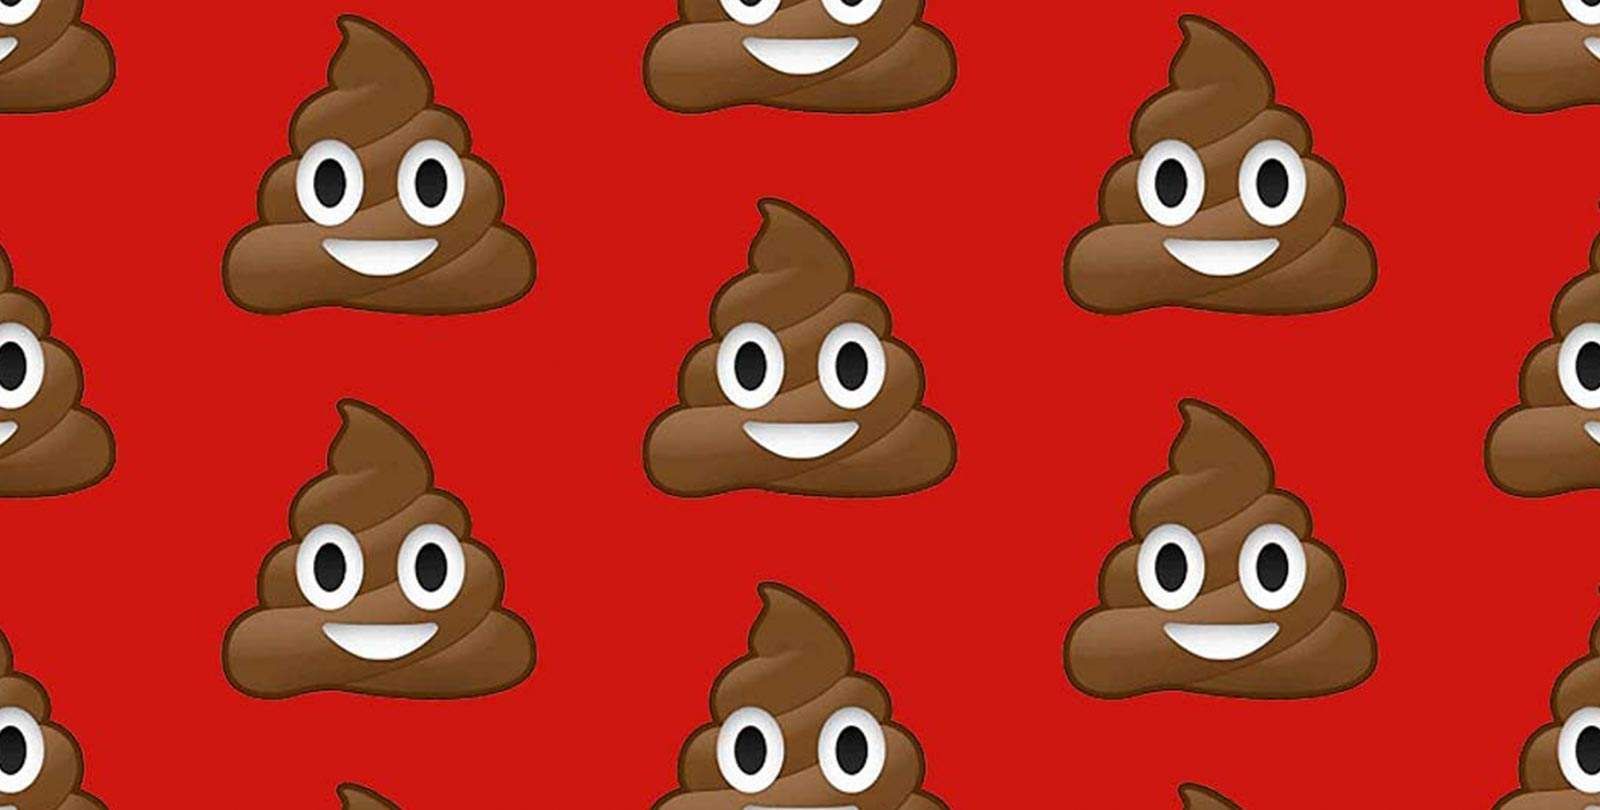 The Poop Emoji Plush Cushion is a Great Conversation Starter